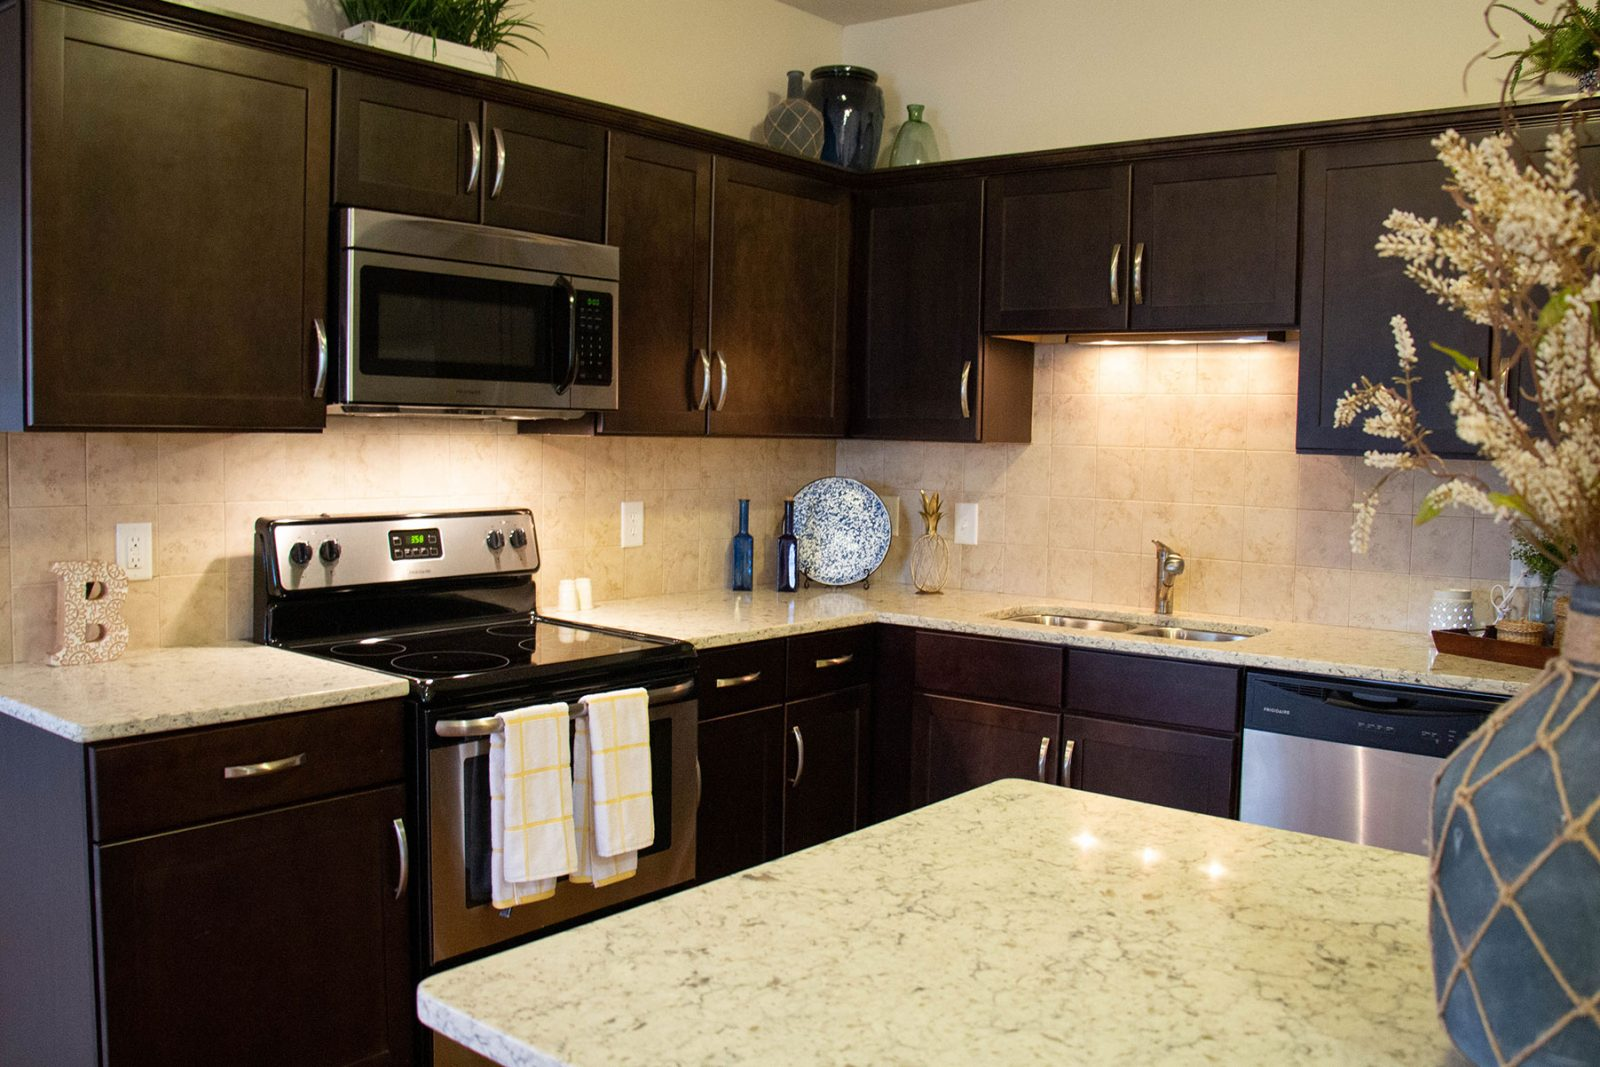 Stainless steel refrigerator, dishwasher, stove and quartz kitchen countertops